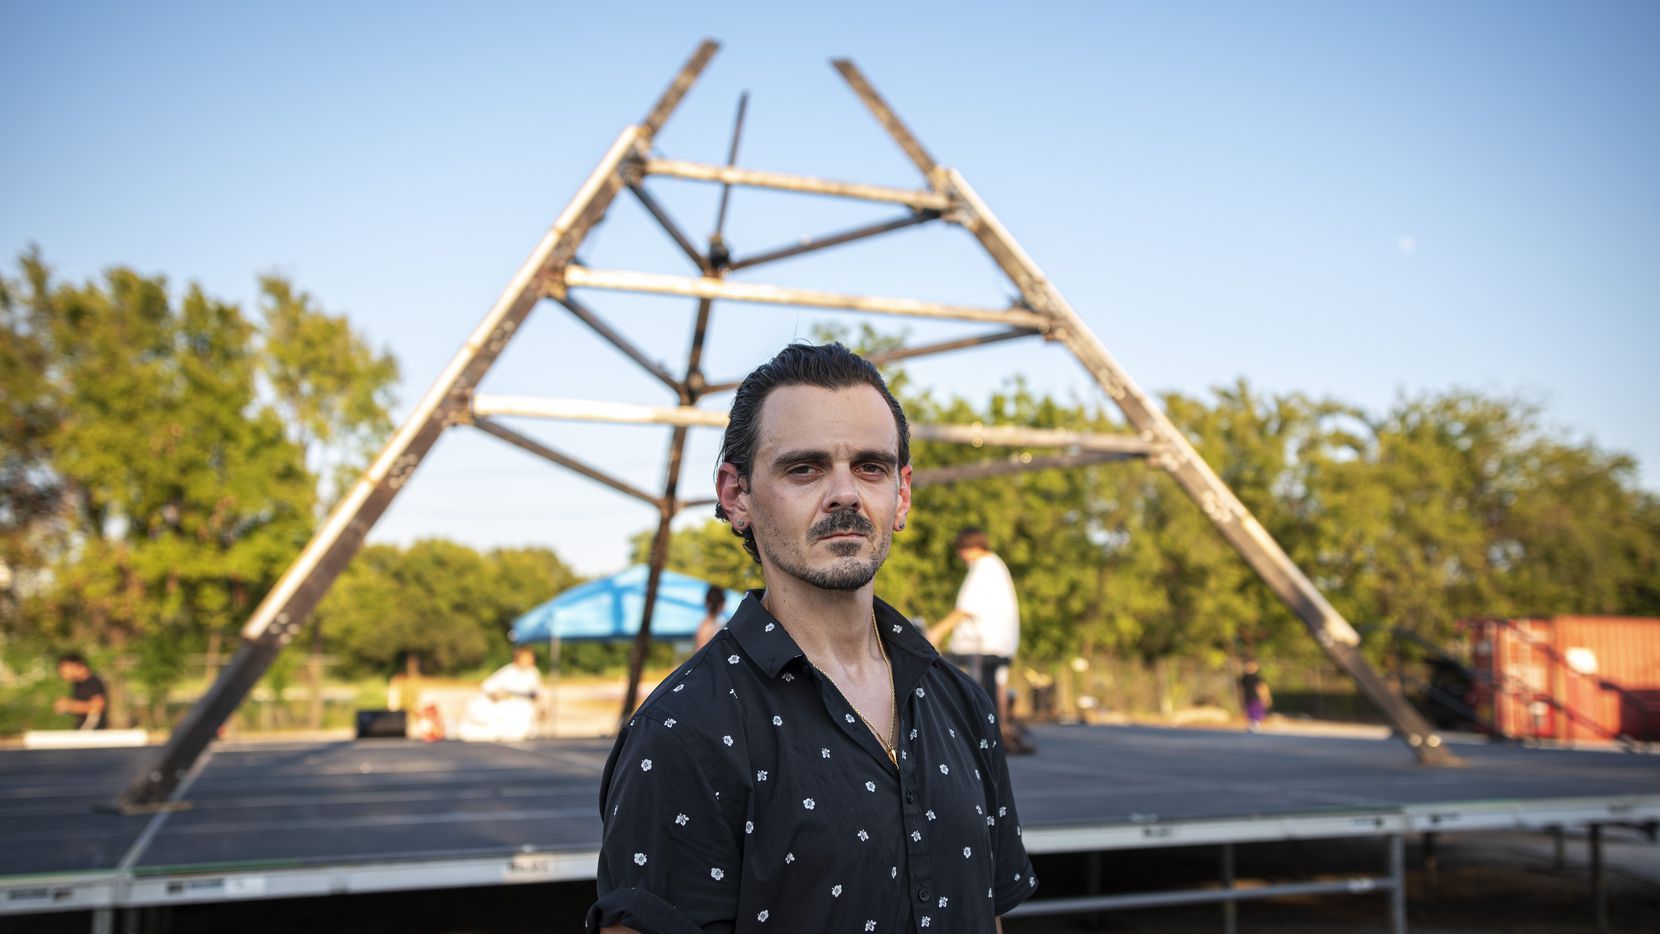 Nolan McGahan opened Tin Star Theater as a drive-in venue on the site of an empty lot in West Dallas.